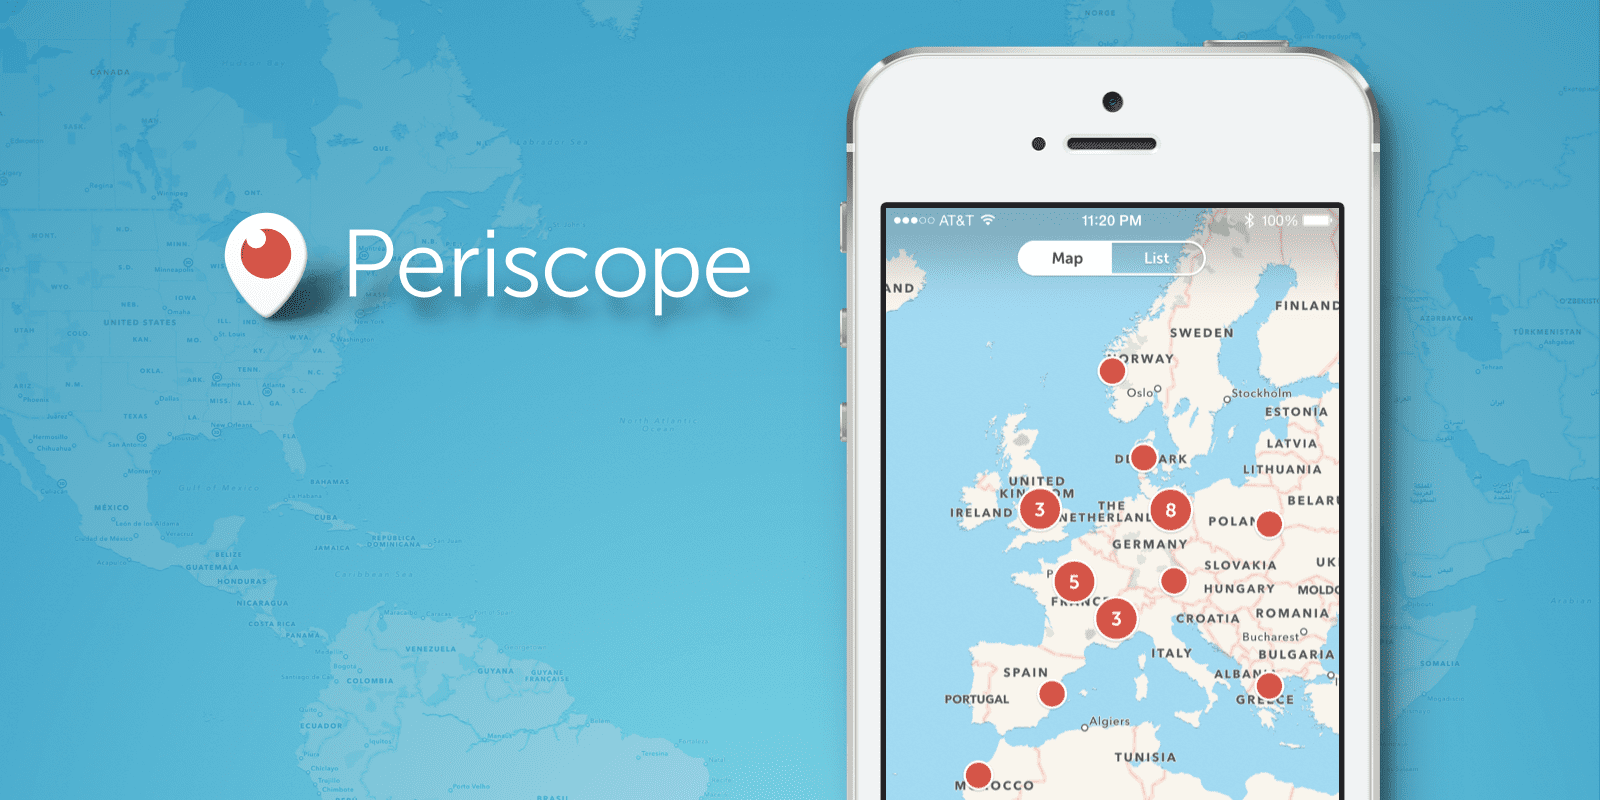 Twitter Buys Periscope: The Future of Digital Marketing?